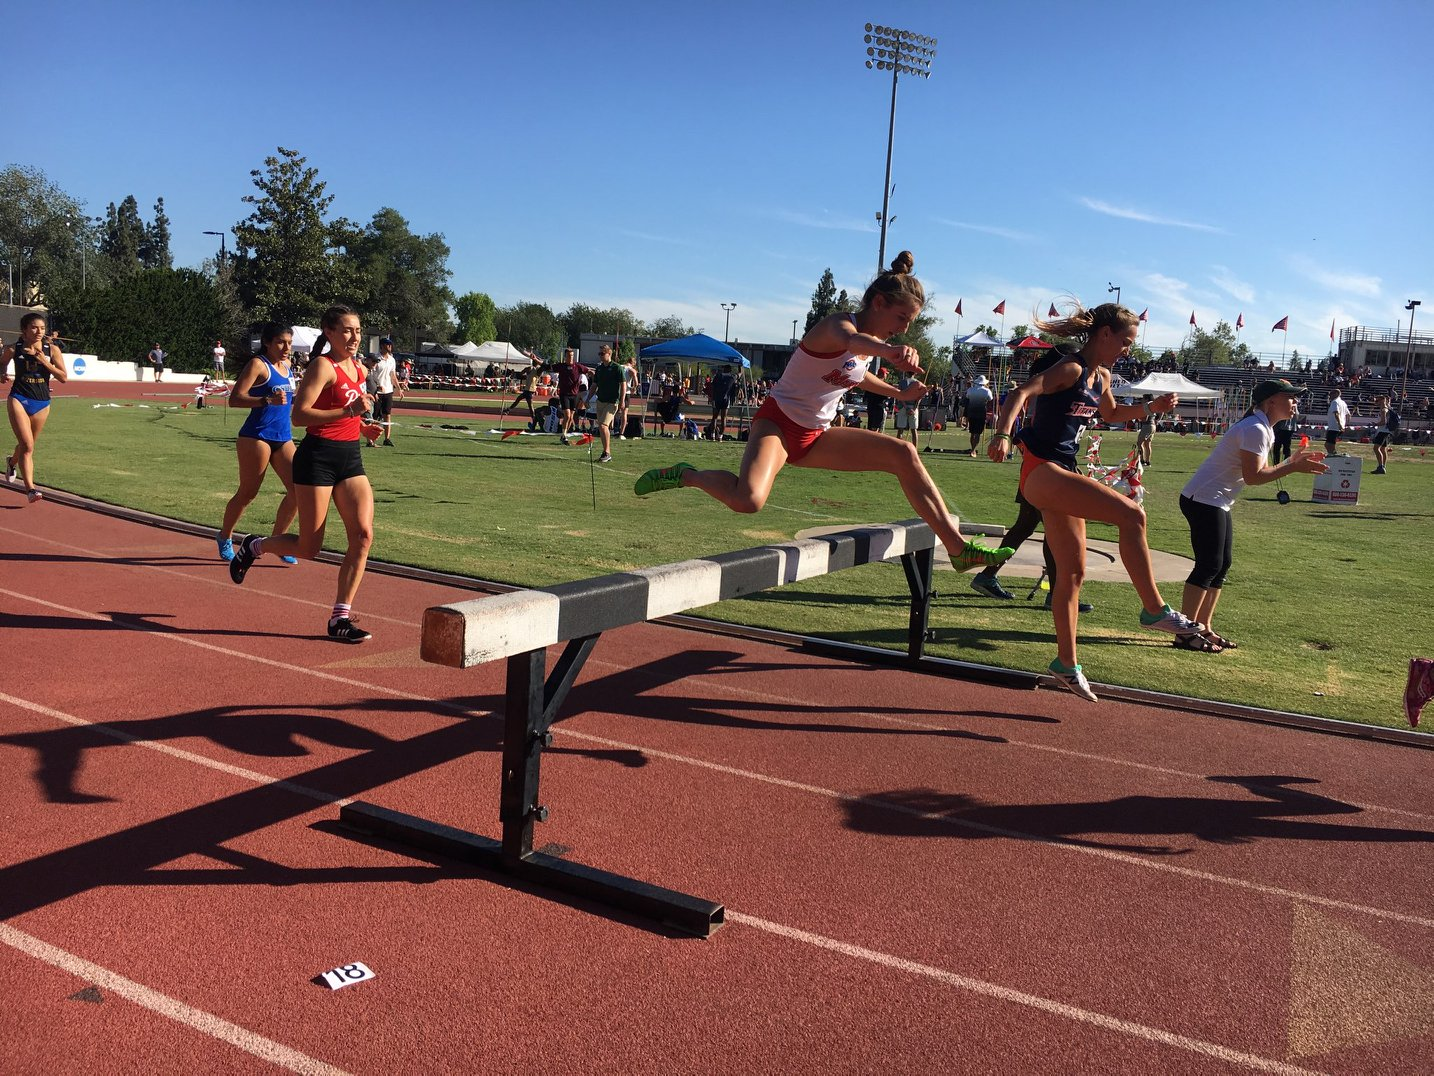 Bryan Clay Invitational: Women's steeplechase results